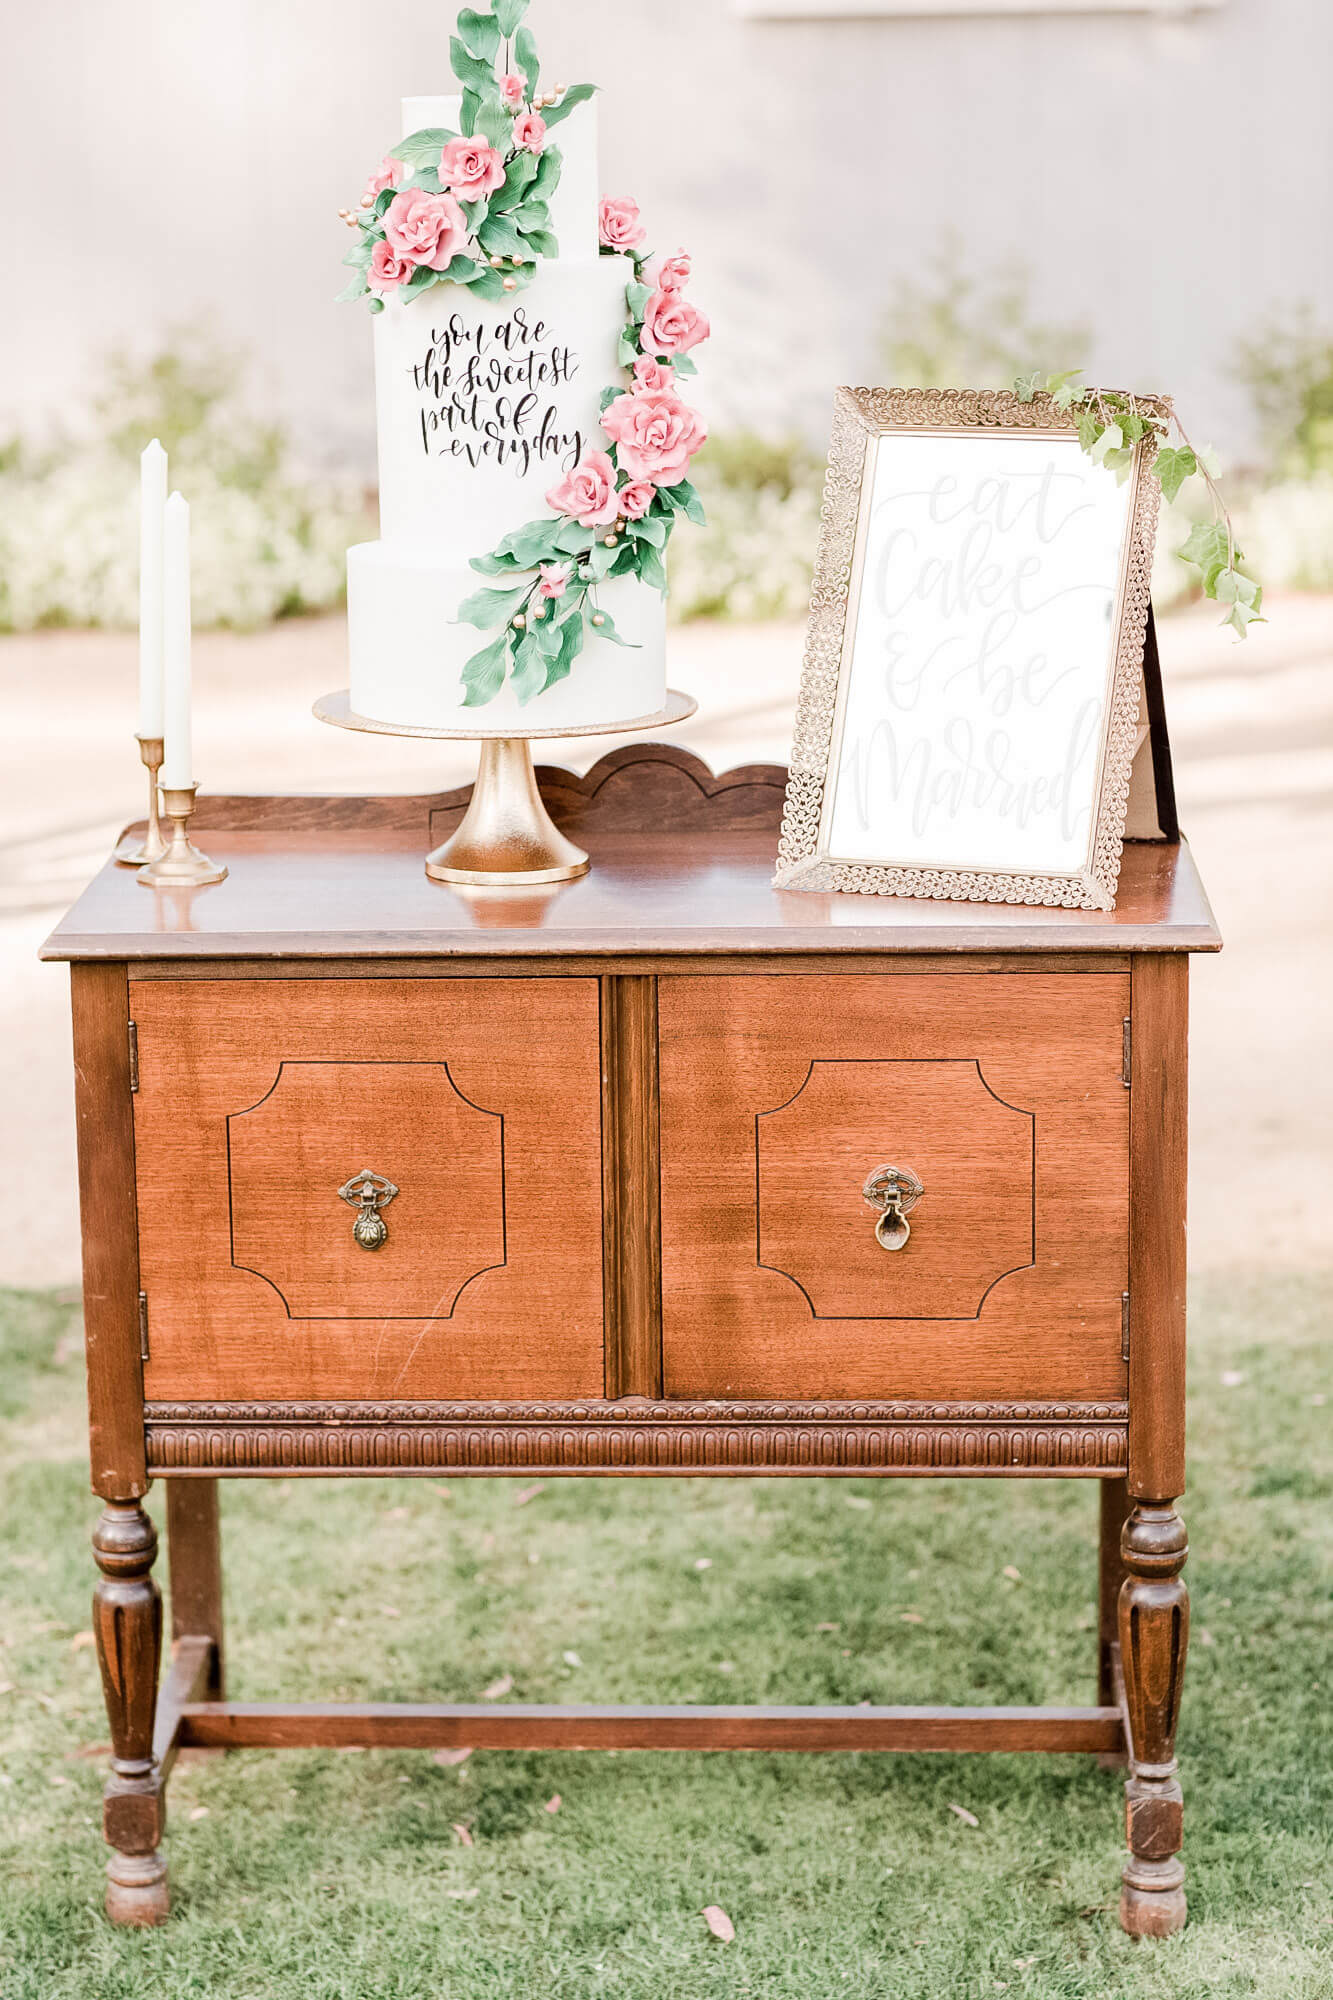 Featured on Every Last Detail + WeddingWire's Instagram + Southern California Bride's Instagram